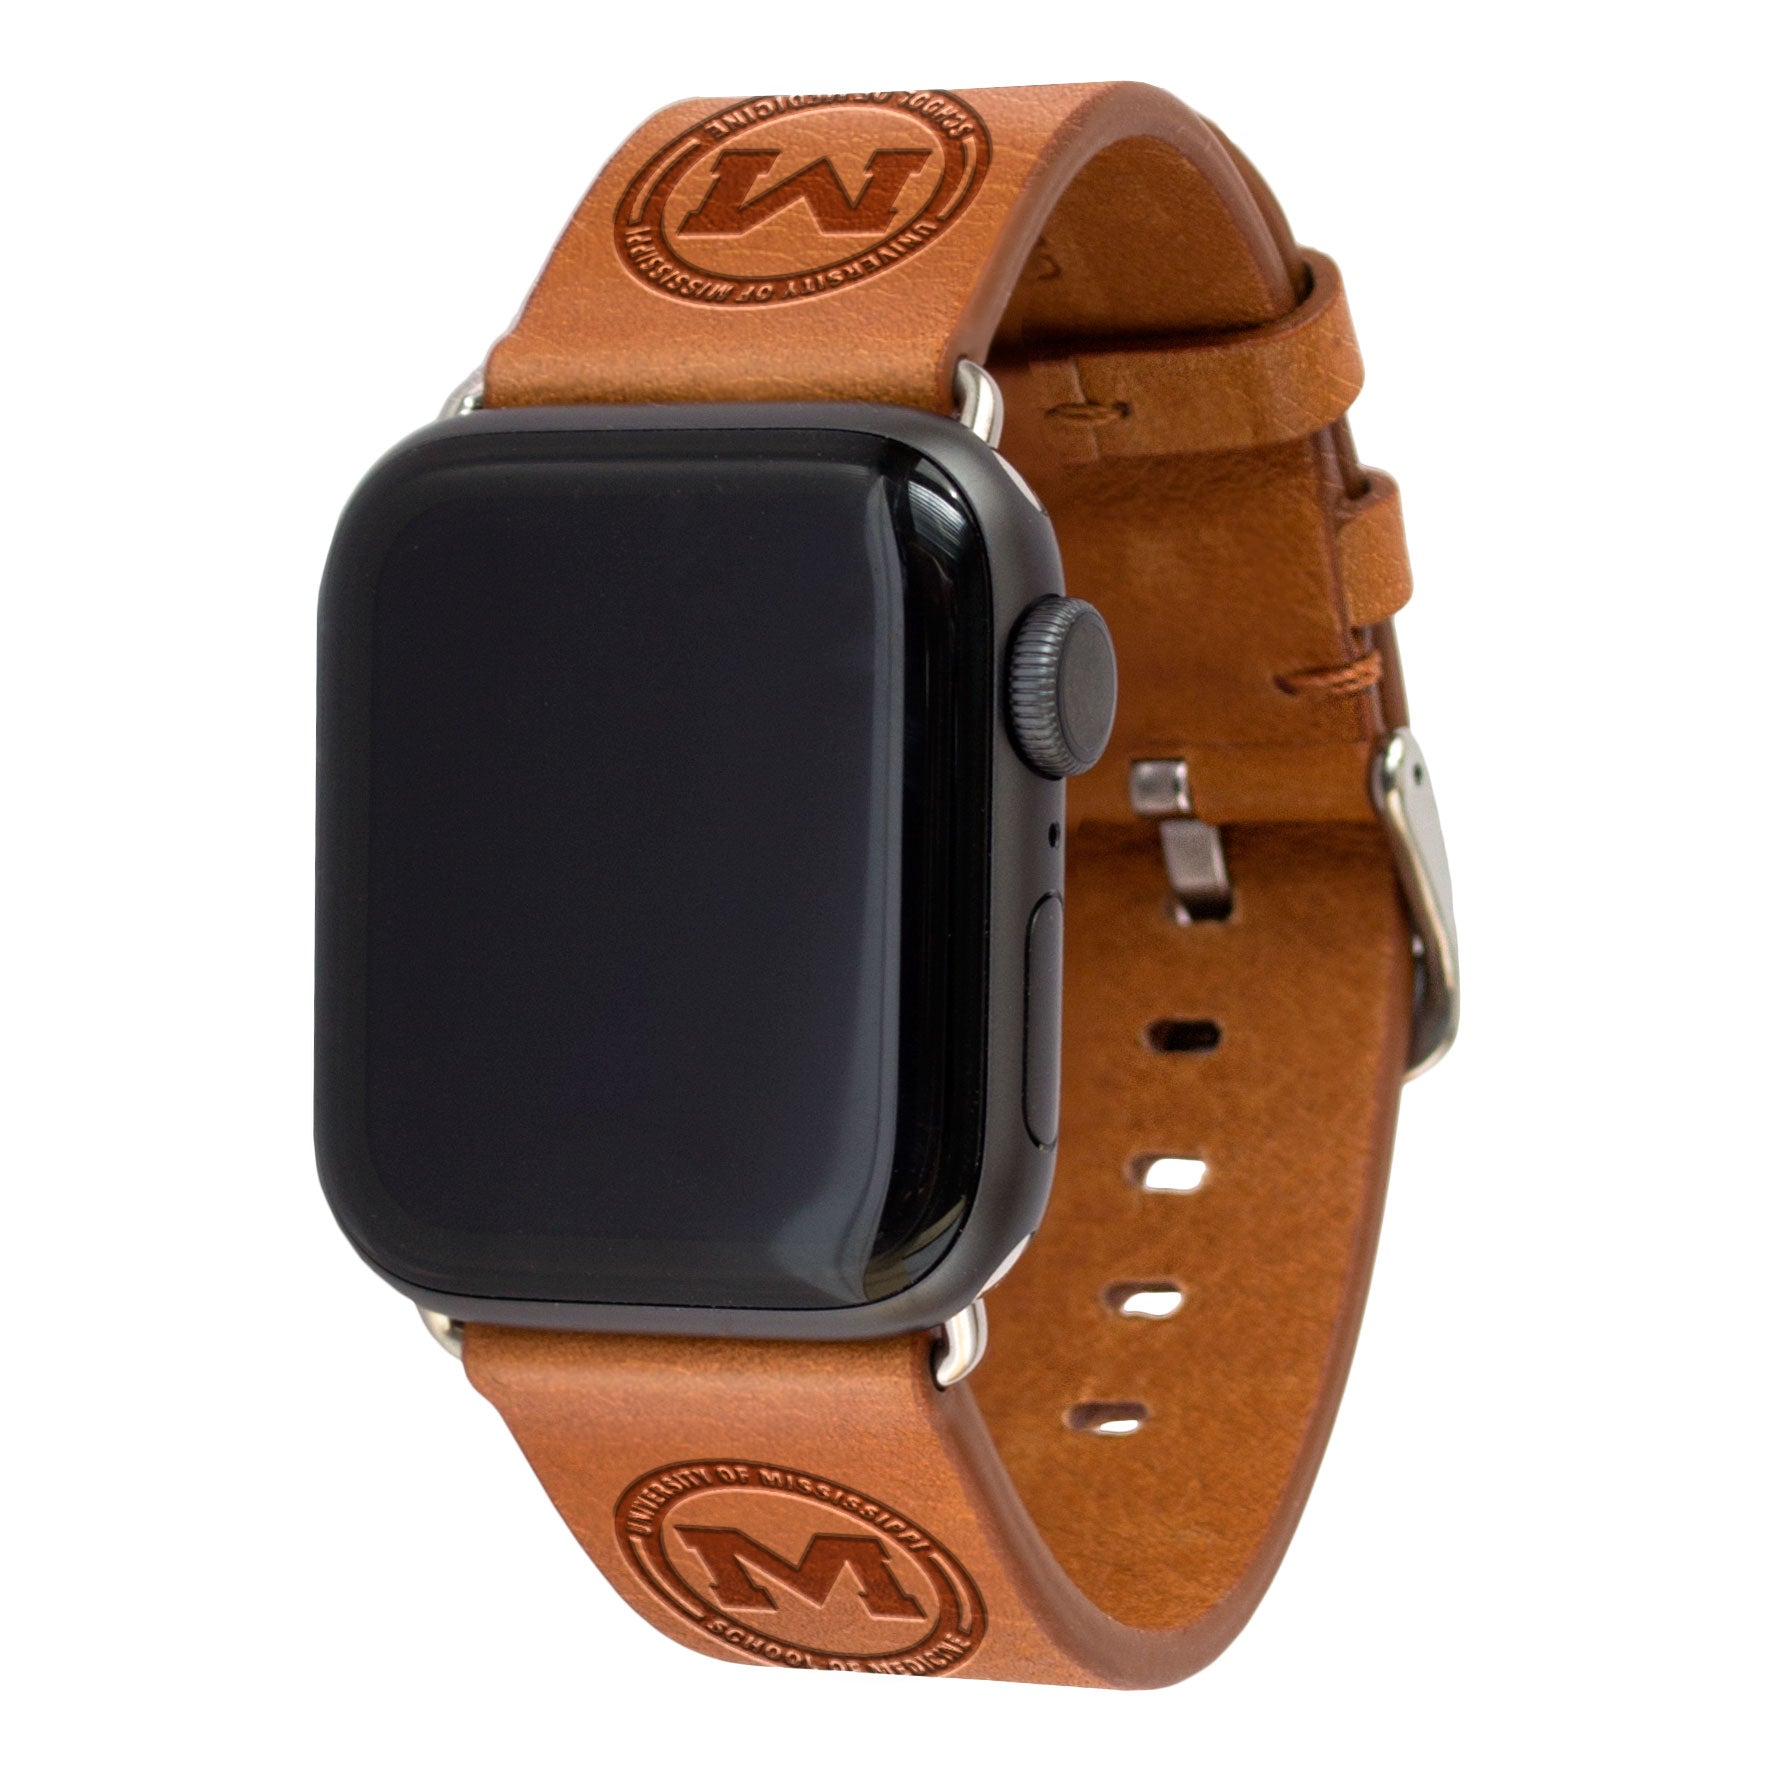 University of Mississippi School of Medicine Leather Apple Watch Band